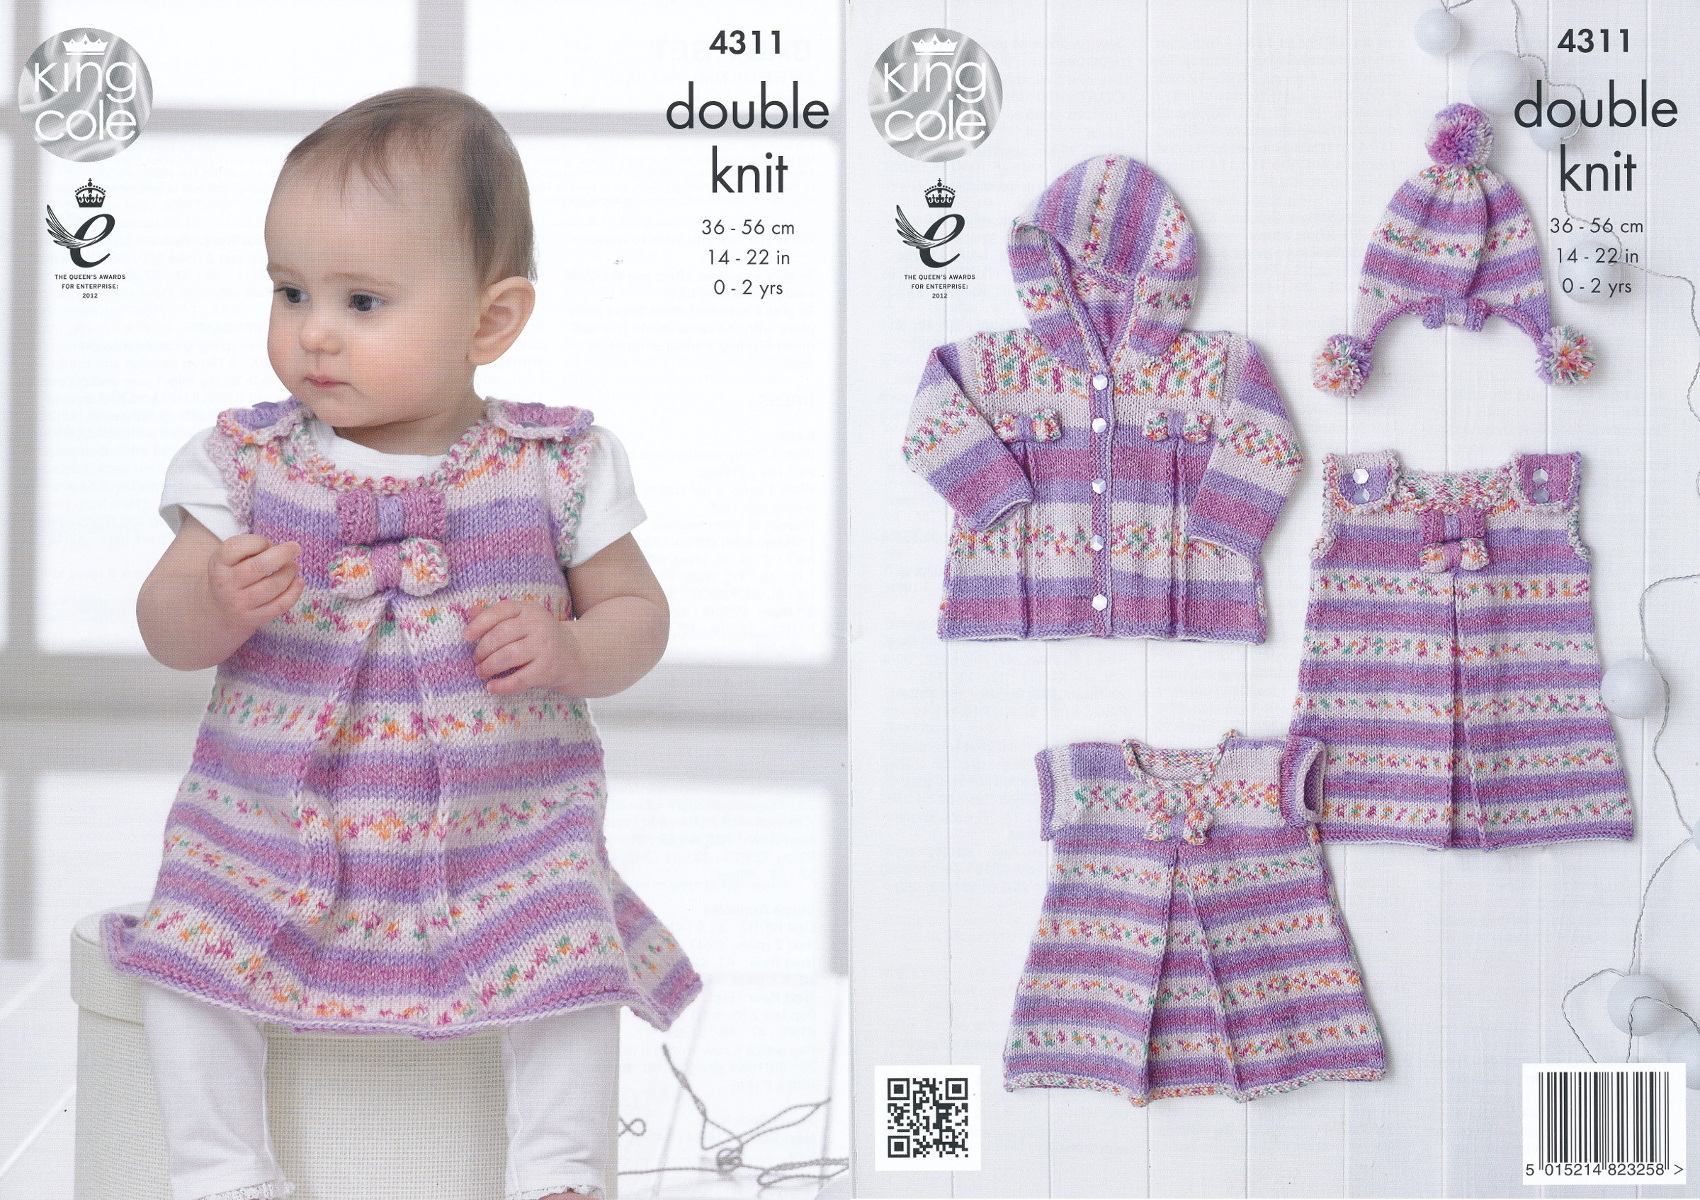 King cole double knitting pattern dress tunic coat hat set baby please look at images below for the chart showing measurements yarn and materials requirement to make this garment bankloansurffo Image collections